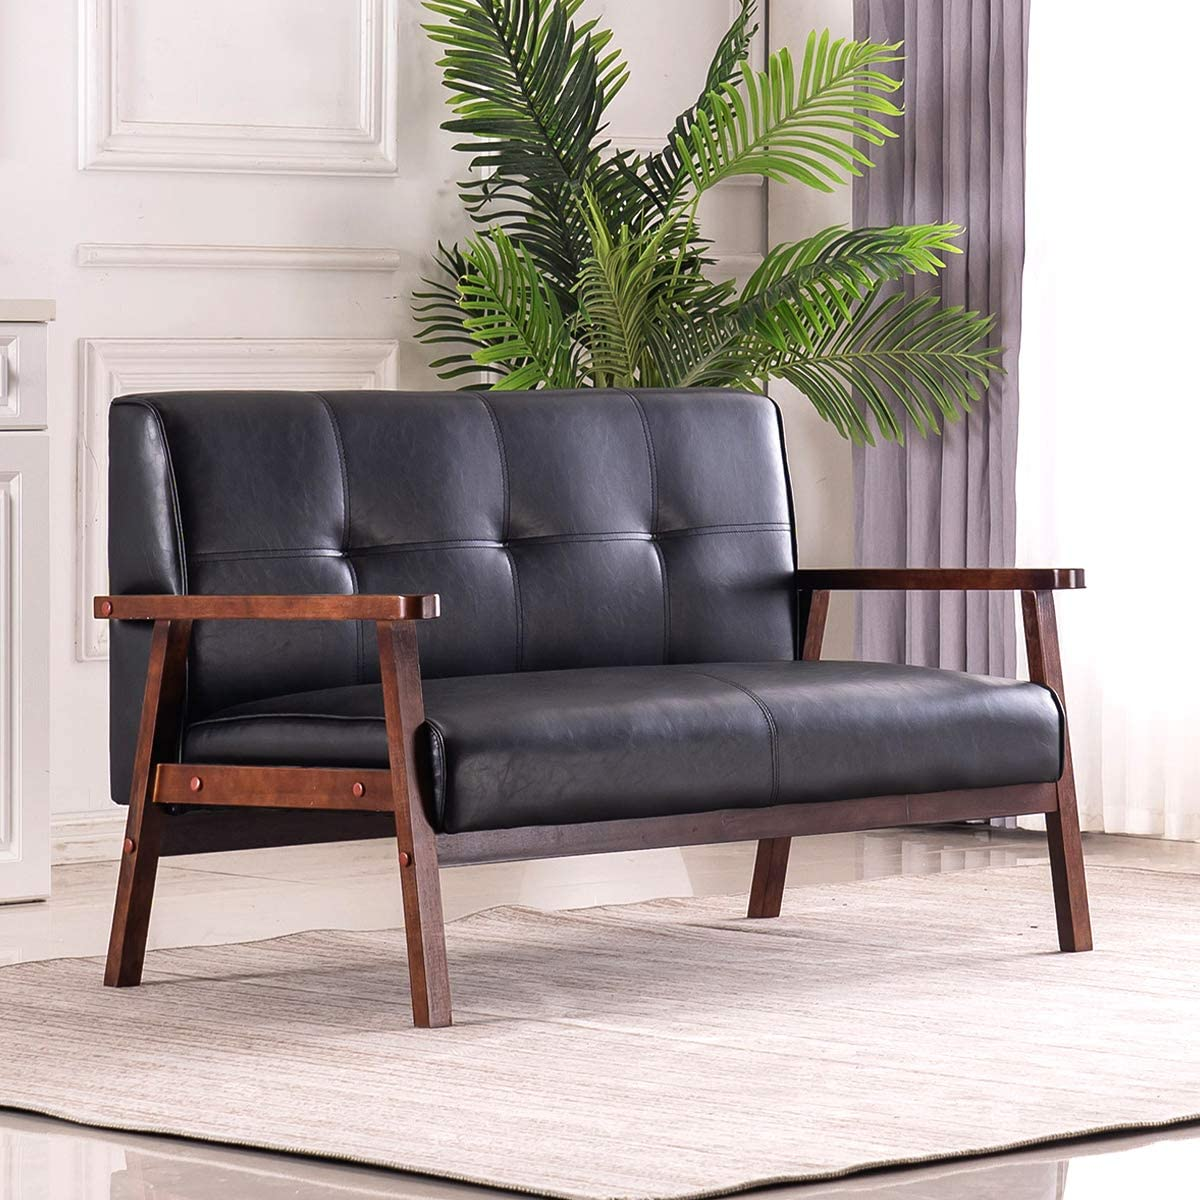 Mid-Century Retro Modern Loveseat Faux Leather Upholstered Wooden 2-Seater Sofa (Black)